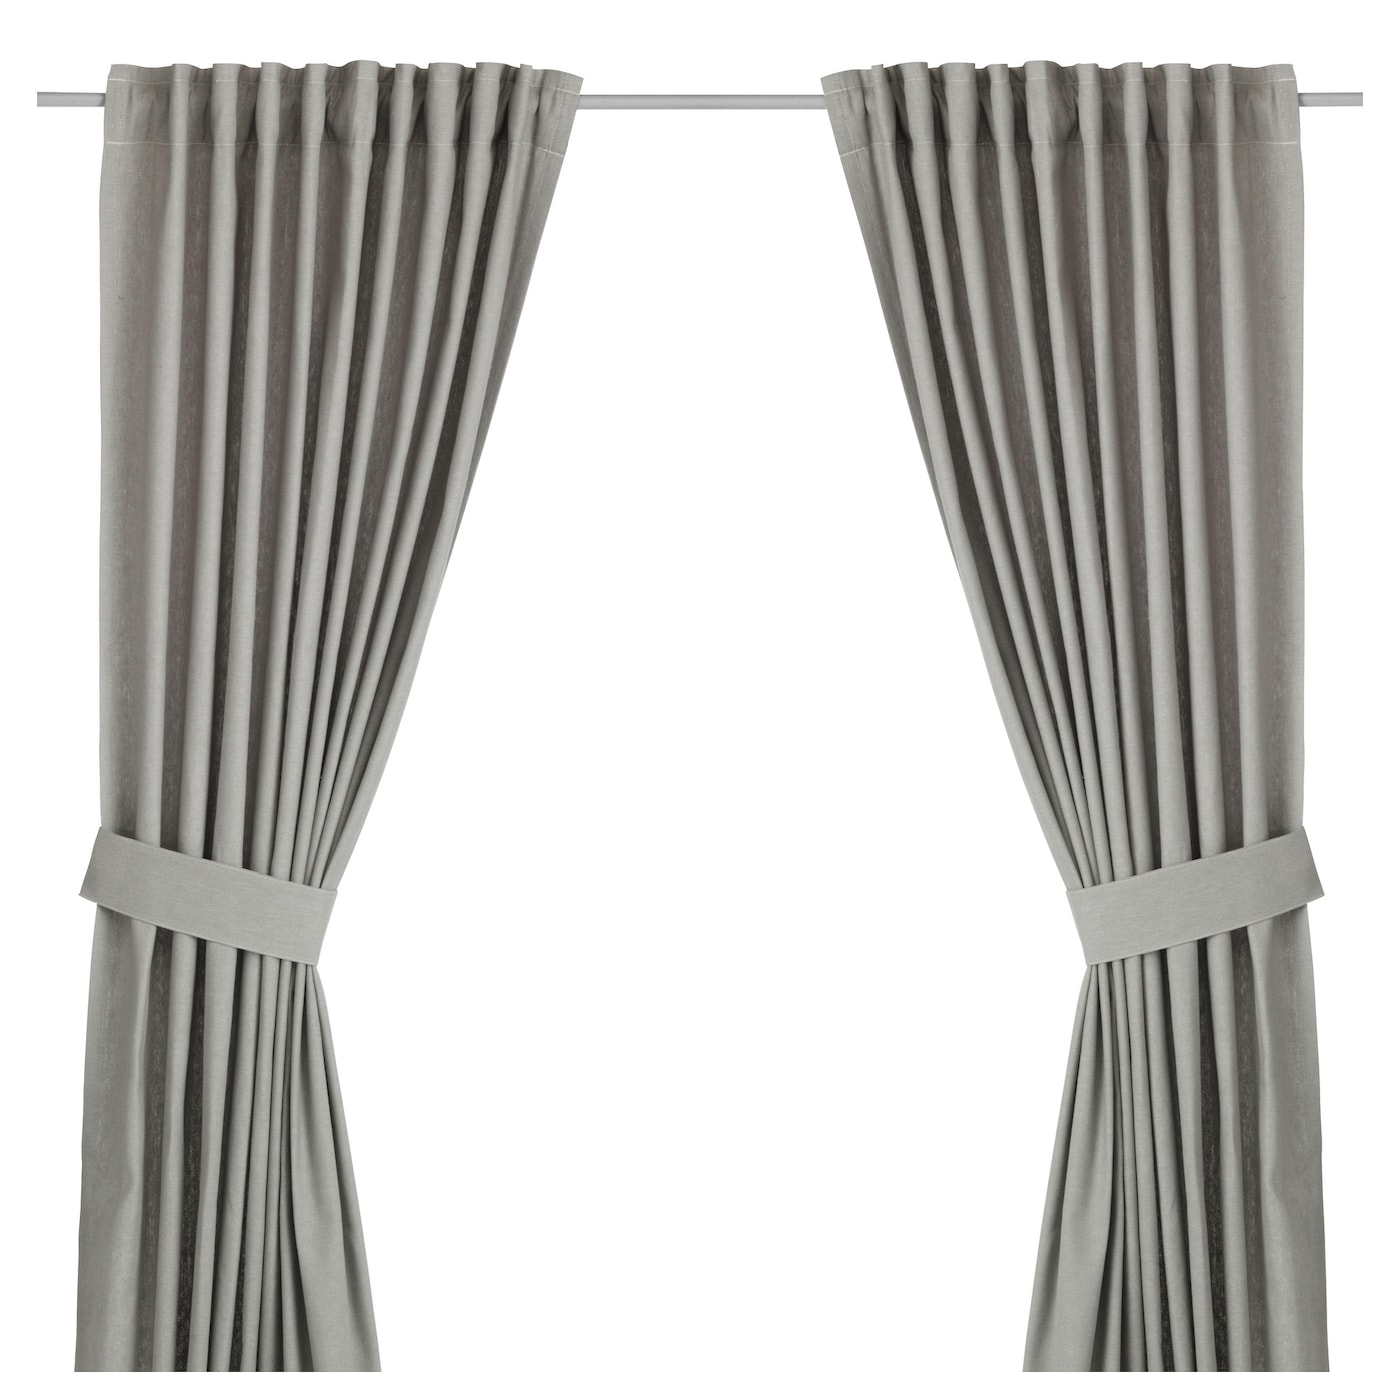 ingert curtains with tie backs 1 pair grey 145x250 cm ikea. Black Bedroom Furniture Sets. Home Design Ideas